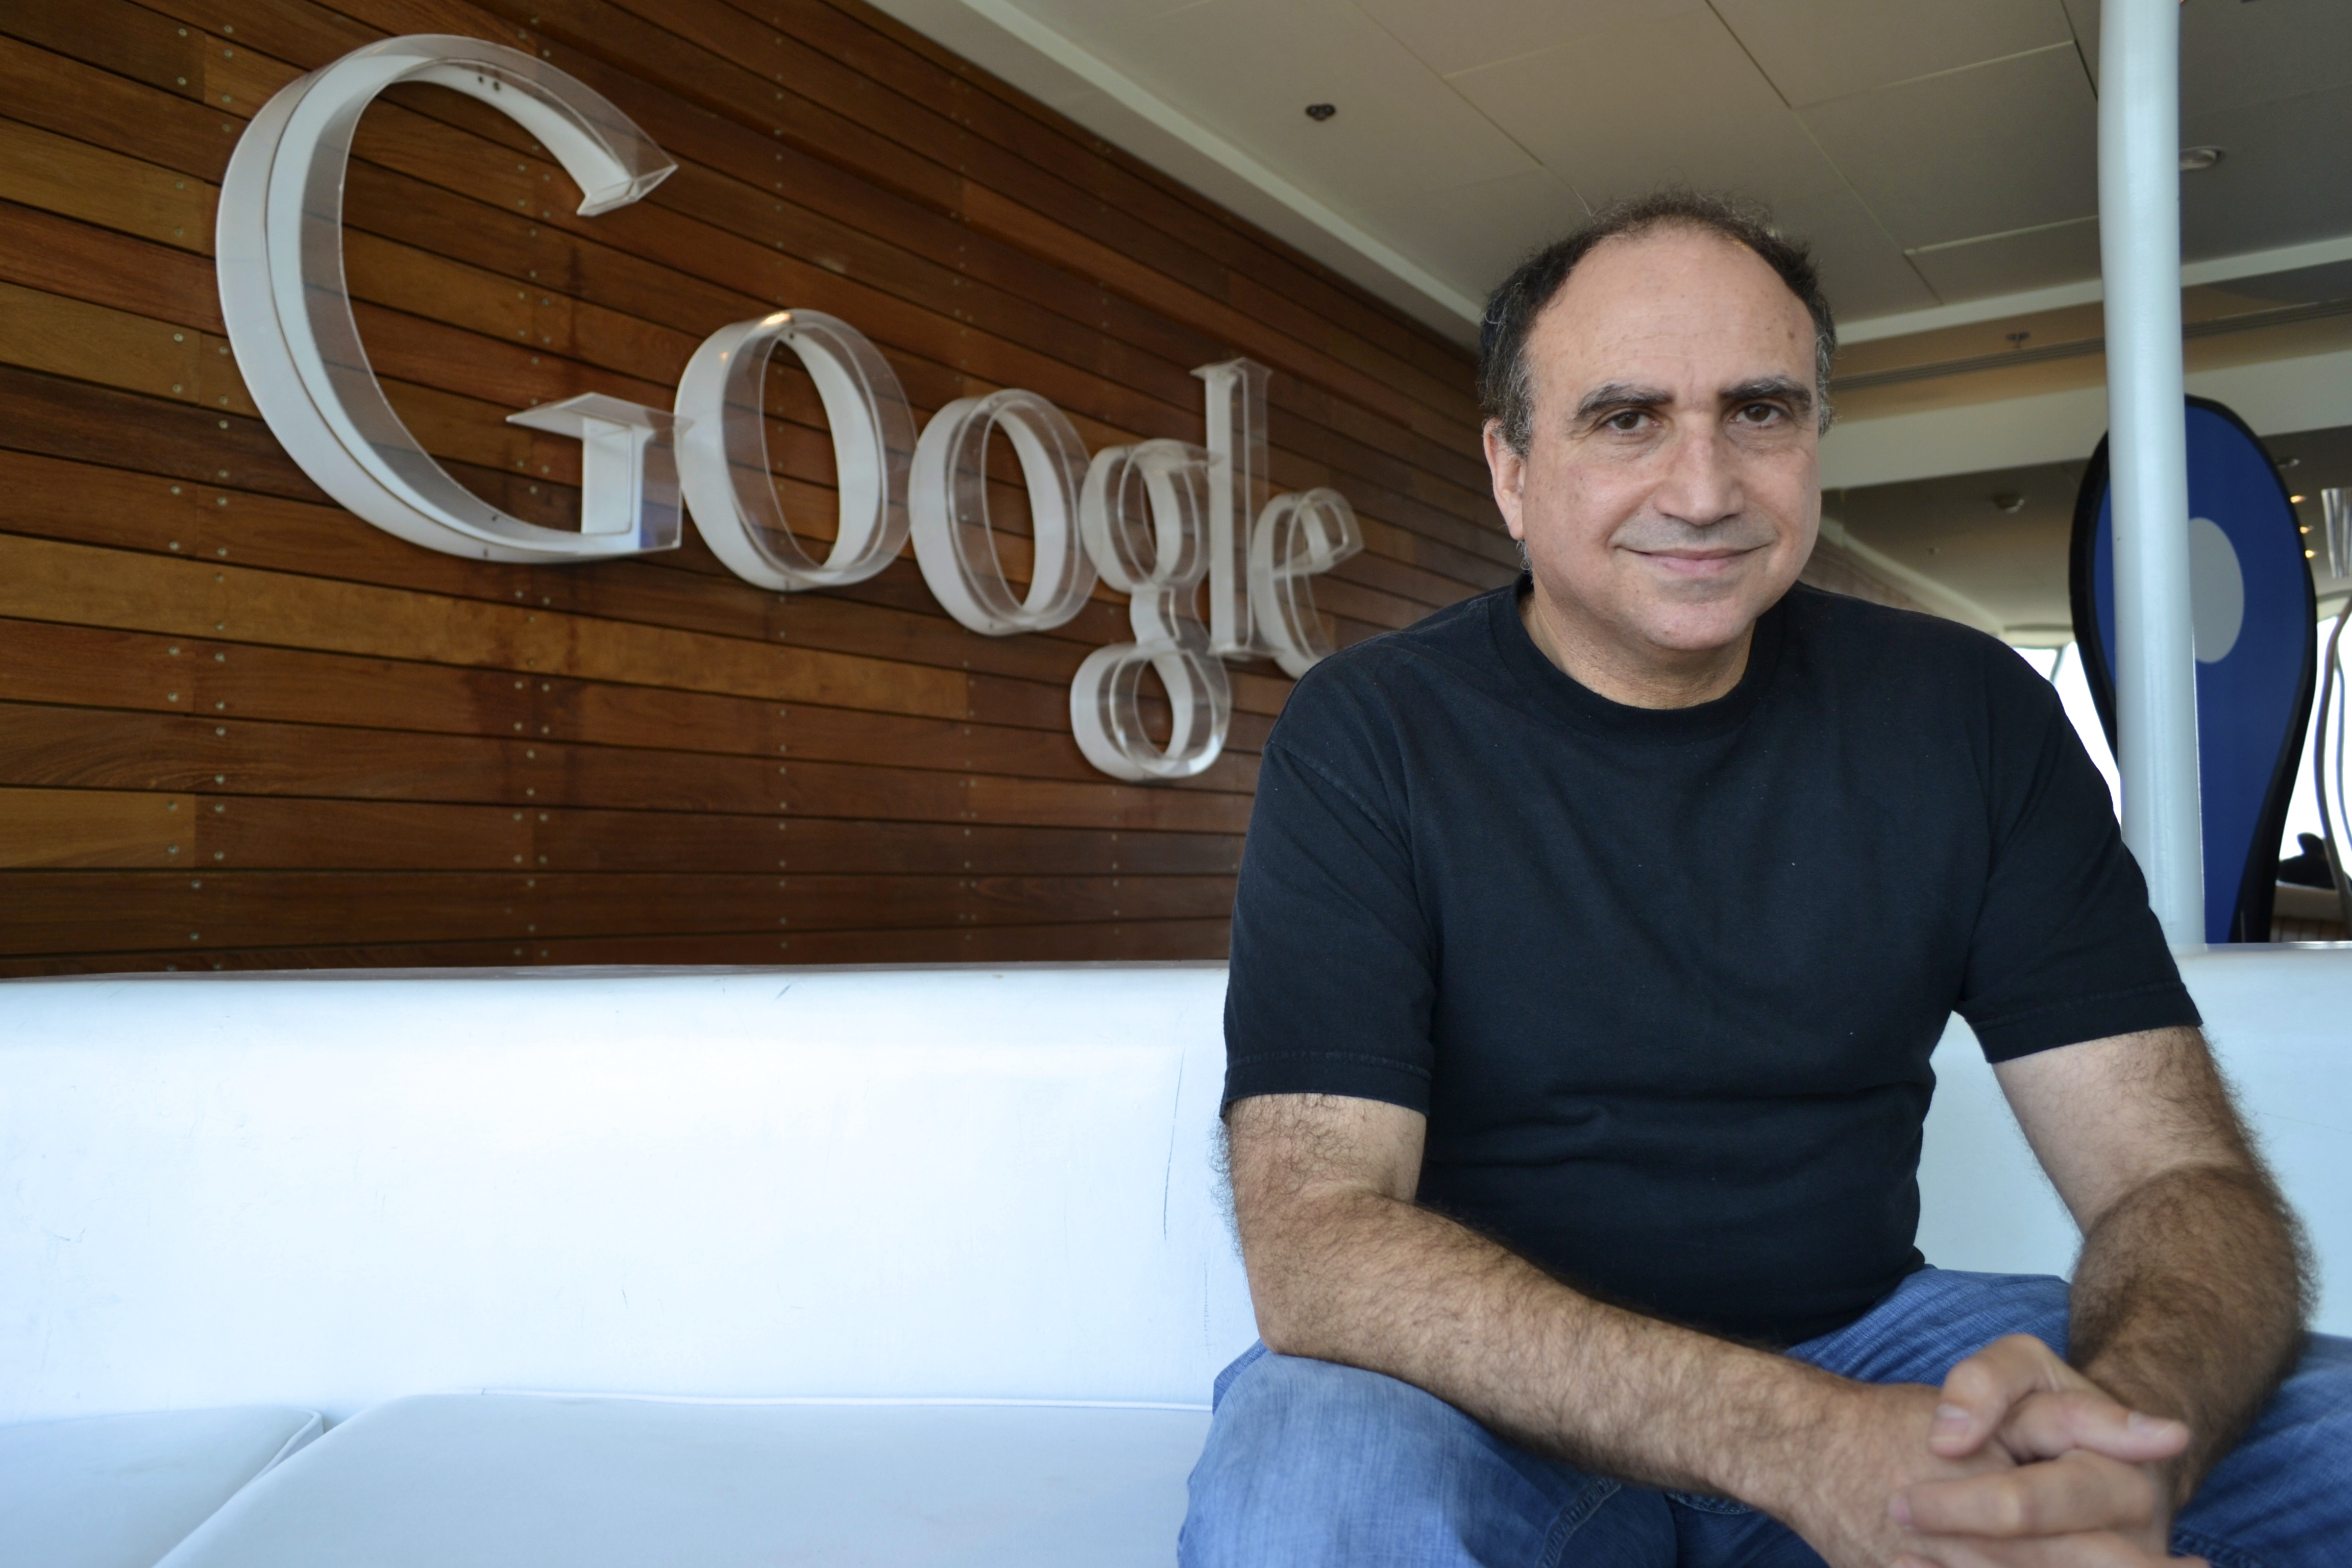 Google spurs digital wave